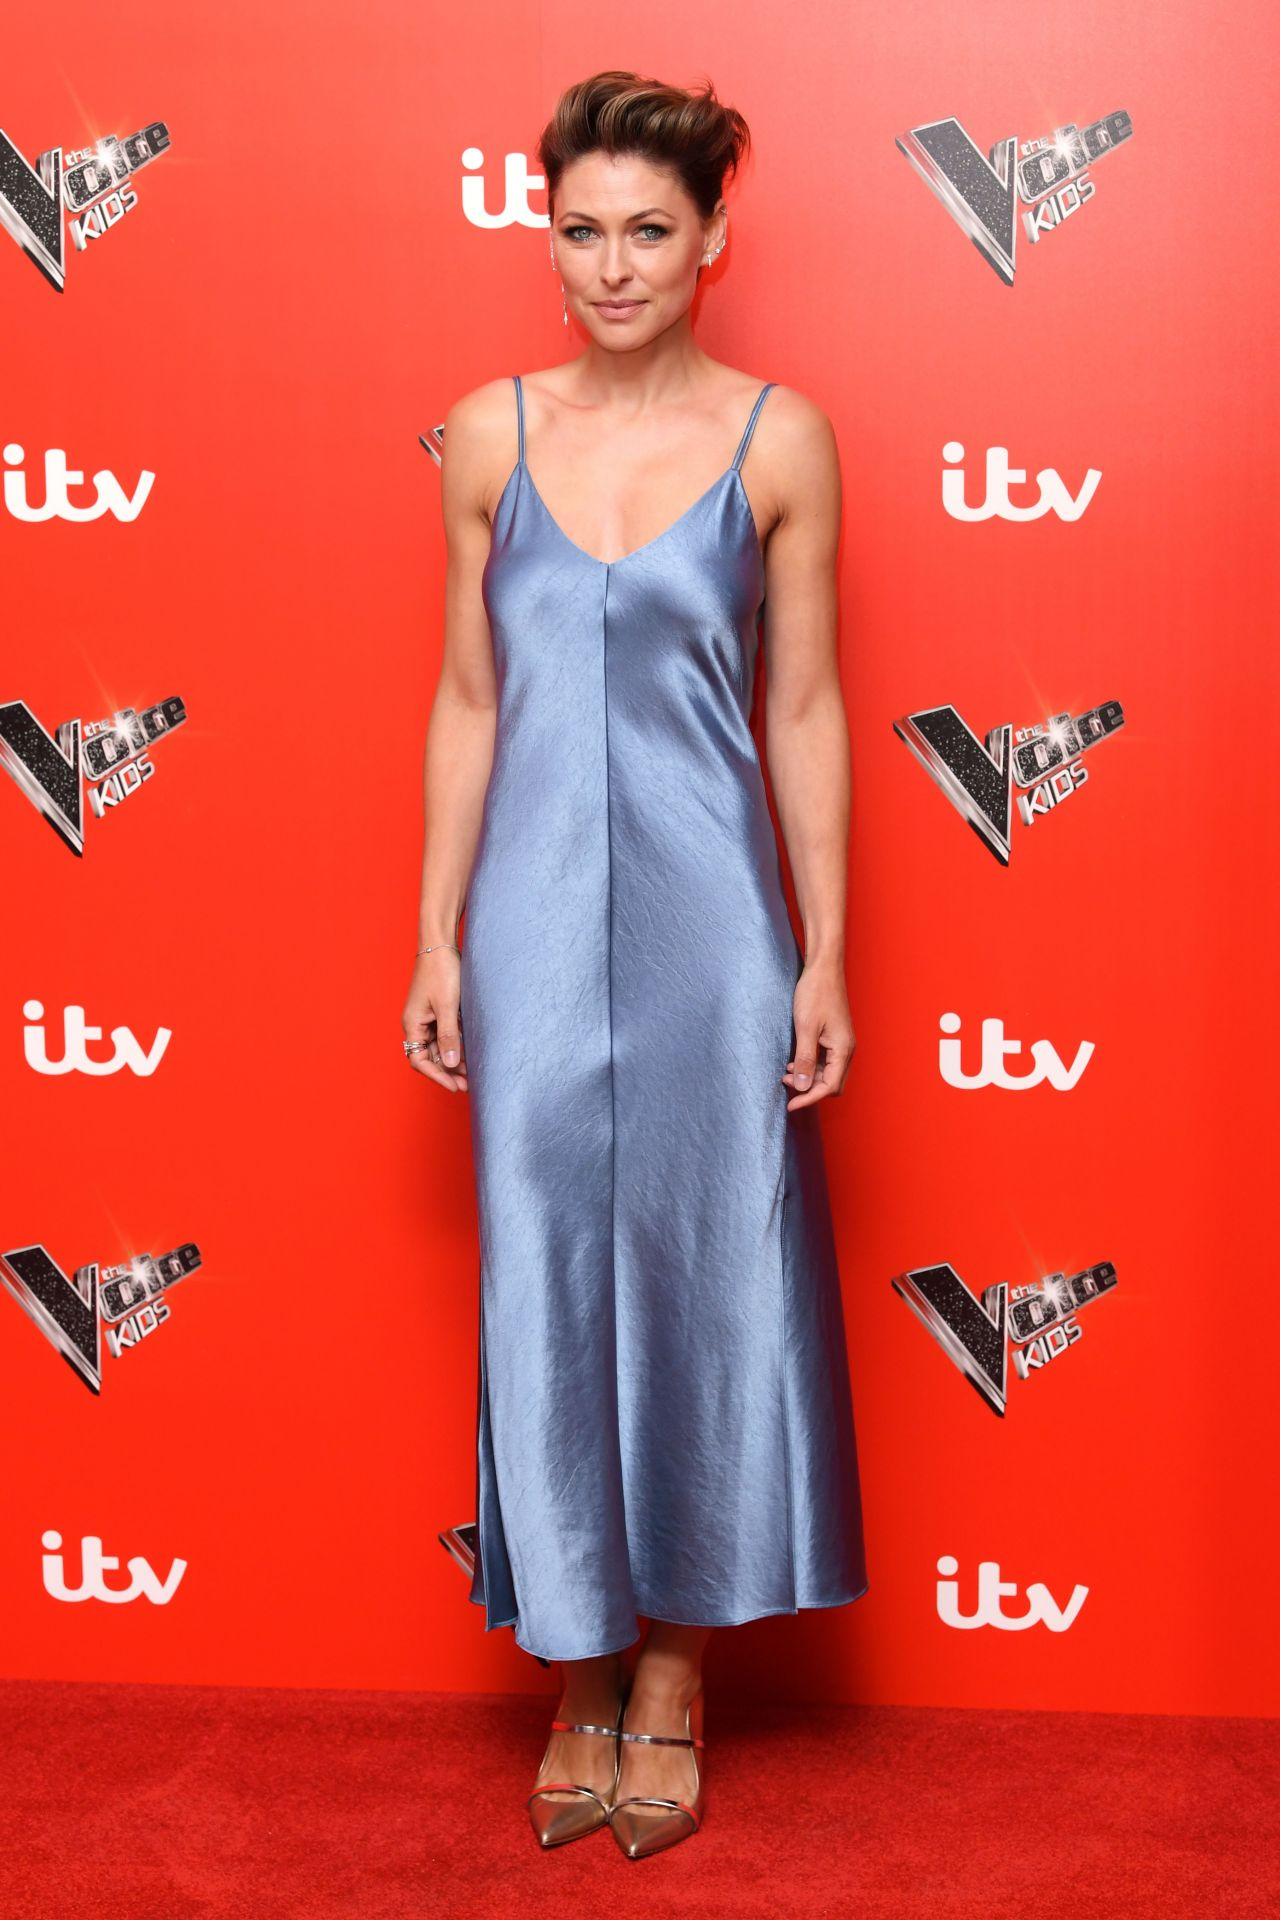 Emma Willis The Voice Kids Photocall In London 07 12 2018